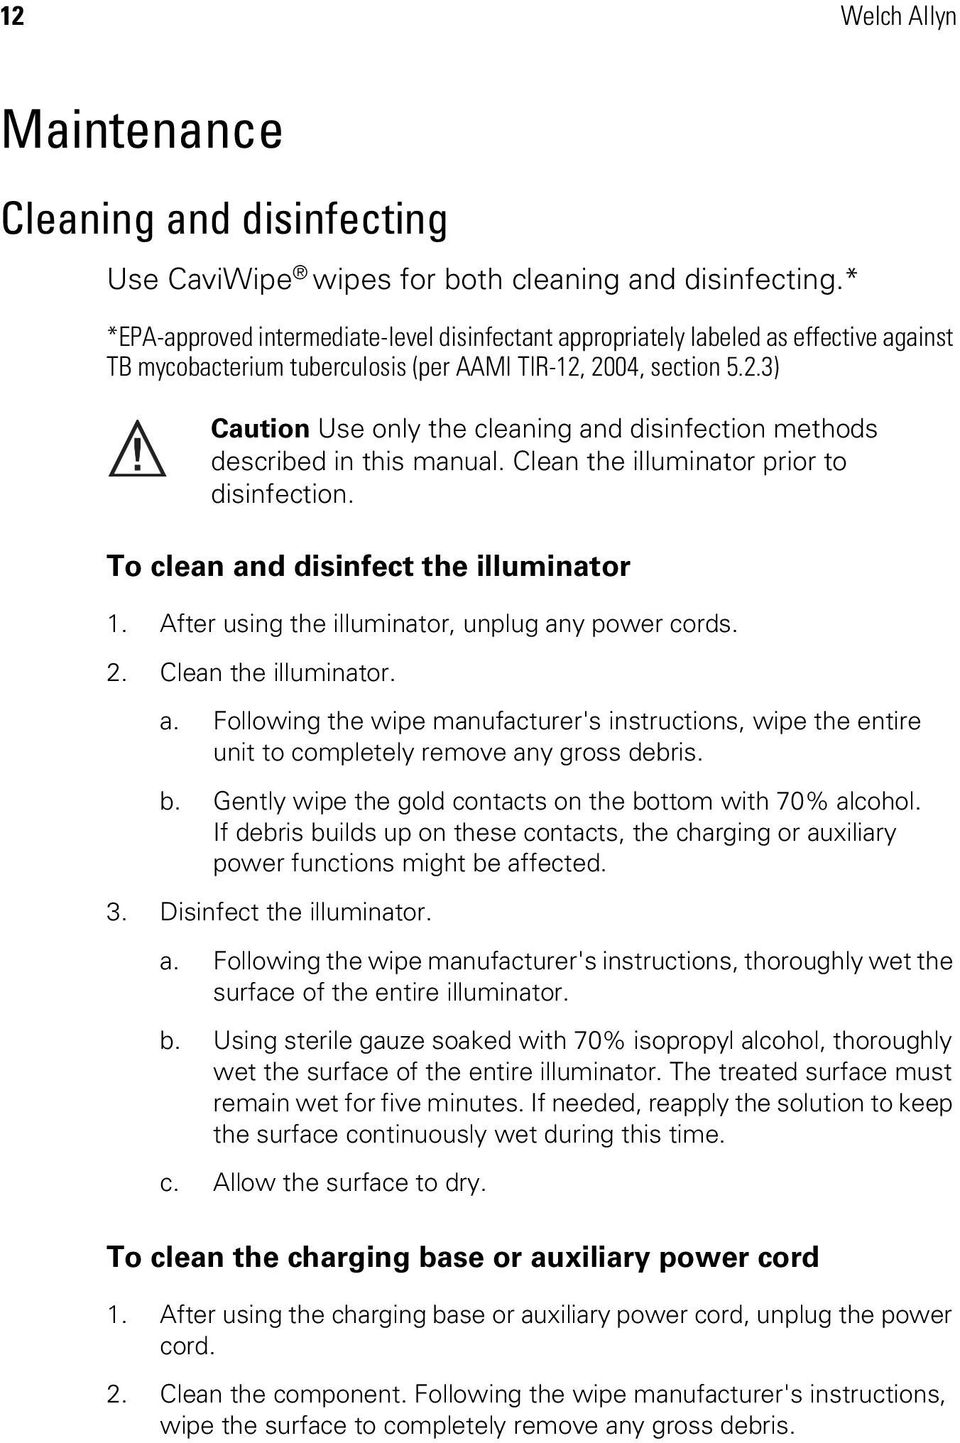 2004, section 5.2.3) Caution Use only the cleaning and disinfection methods described in this manual. Clean the illuminator prior to disinfection. To clean and disinfect the illuminator 1.